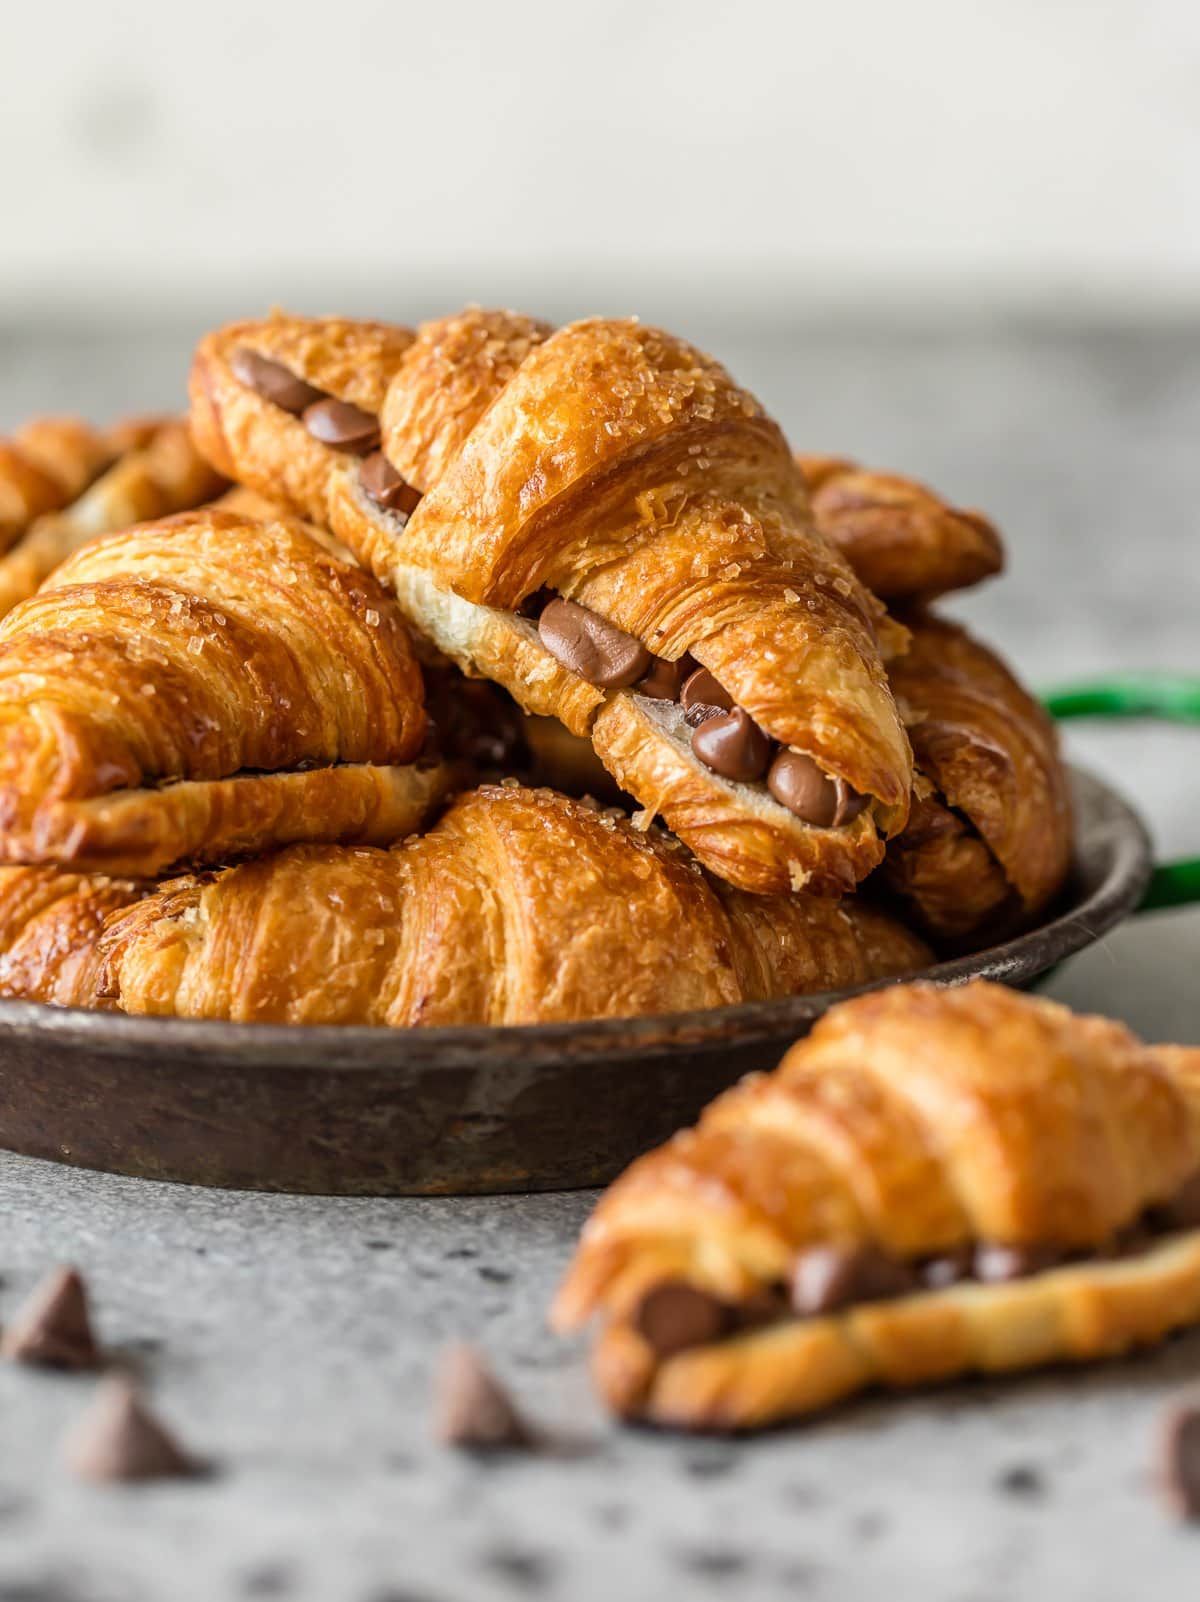 a plate of chocolate croissants